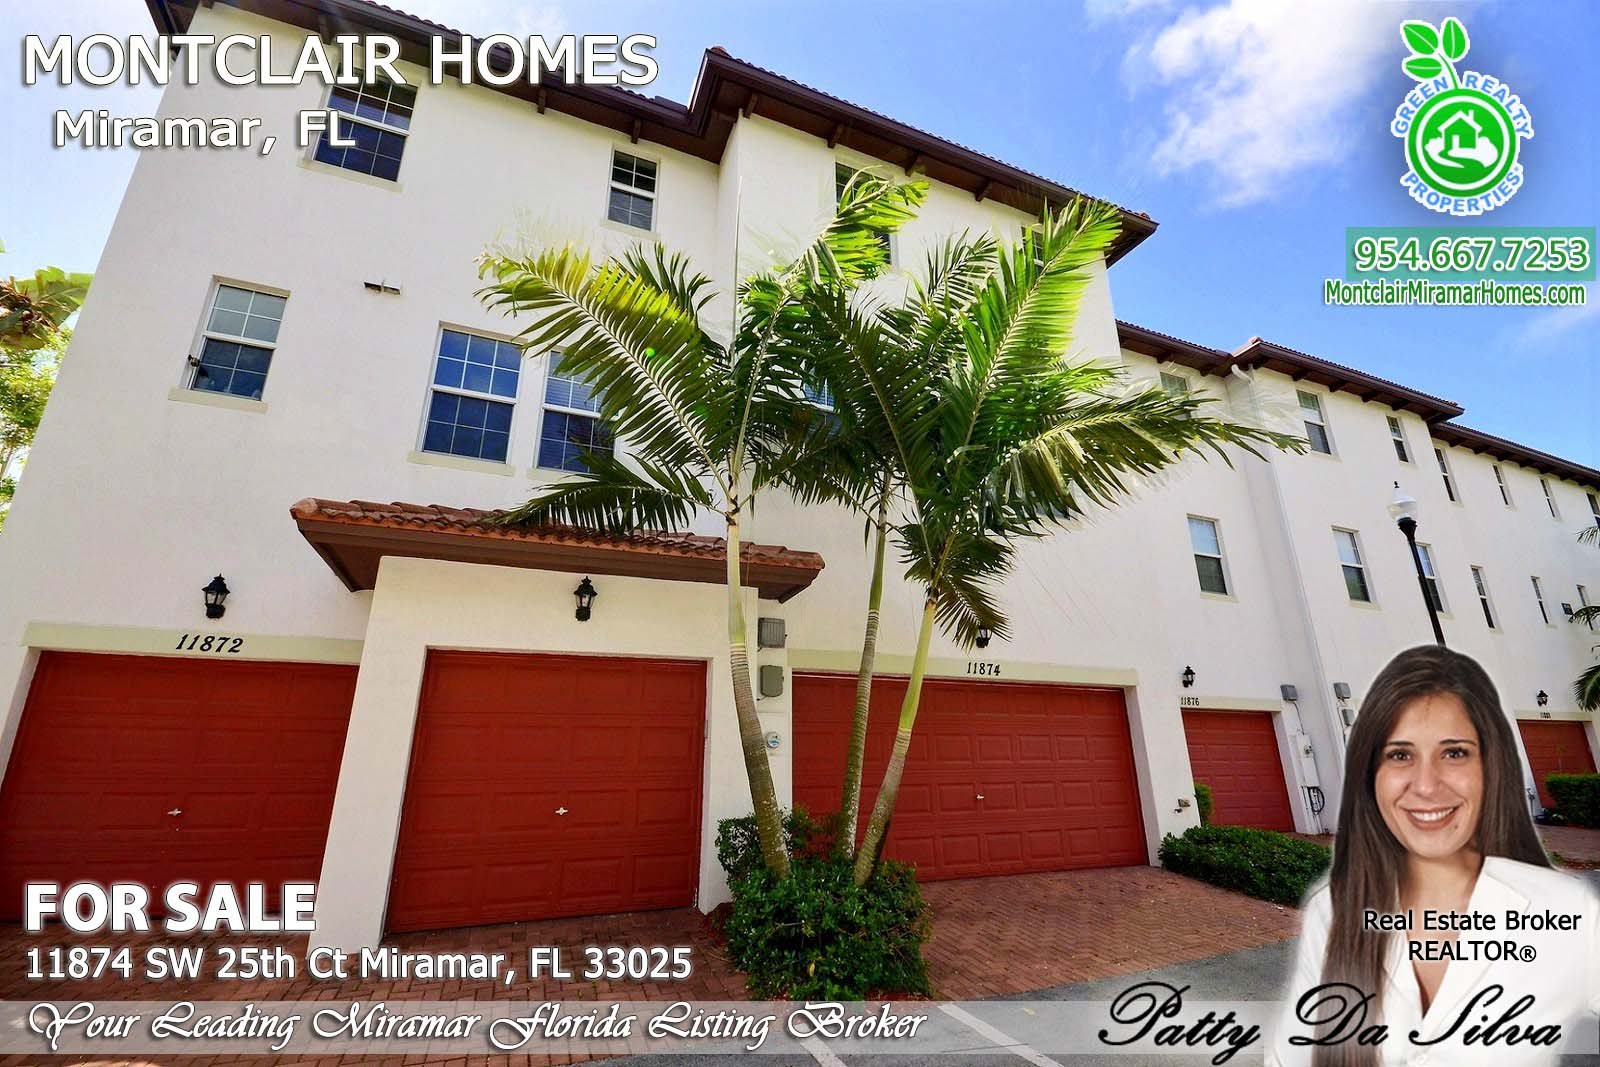 11874 SW 25 CT, Miramar FL 33025 - Montclair (27)